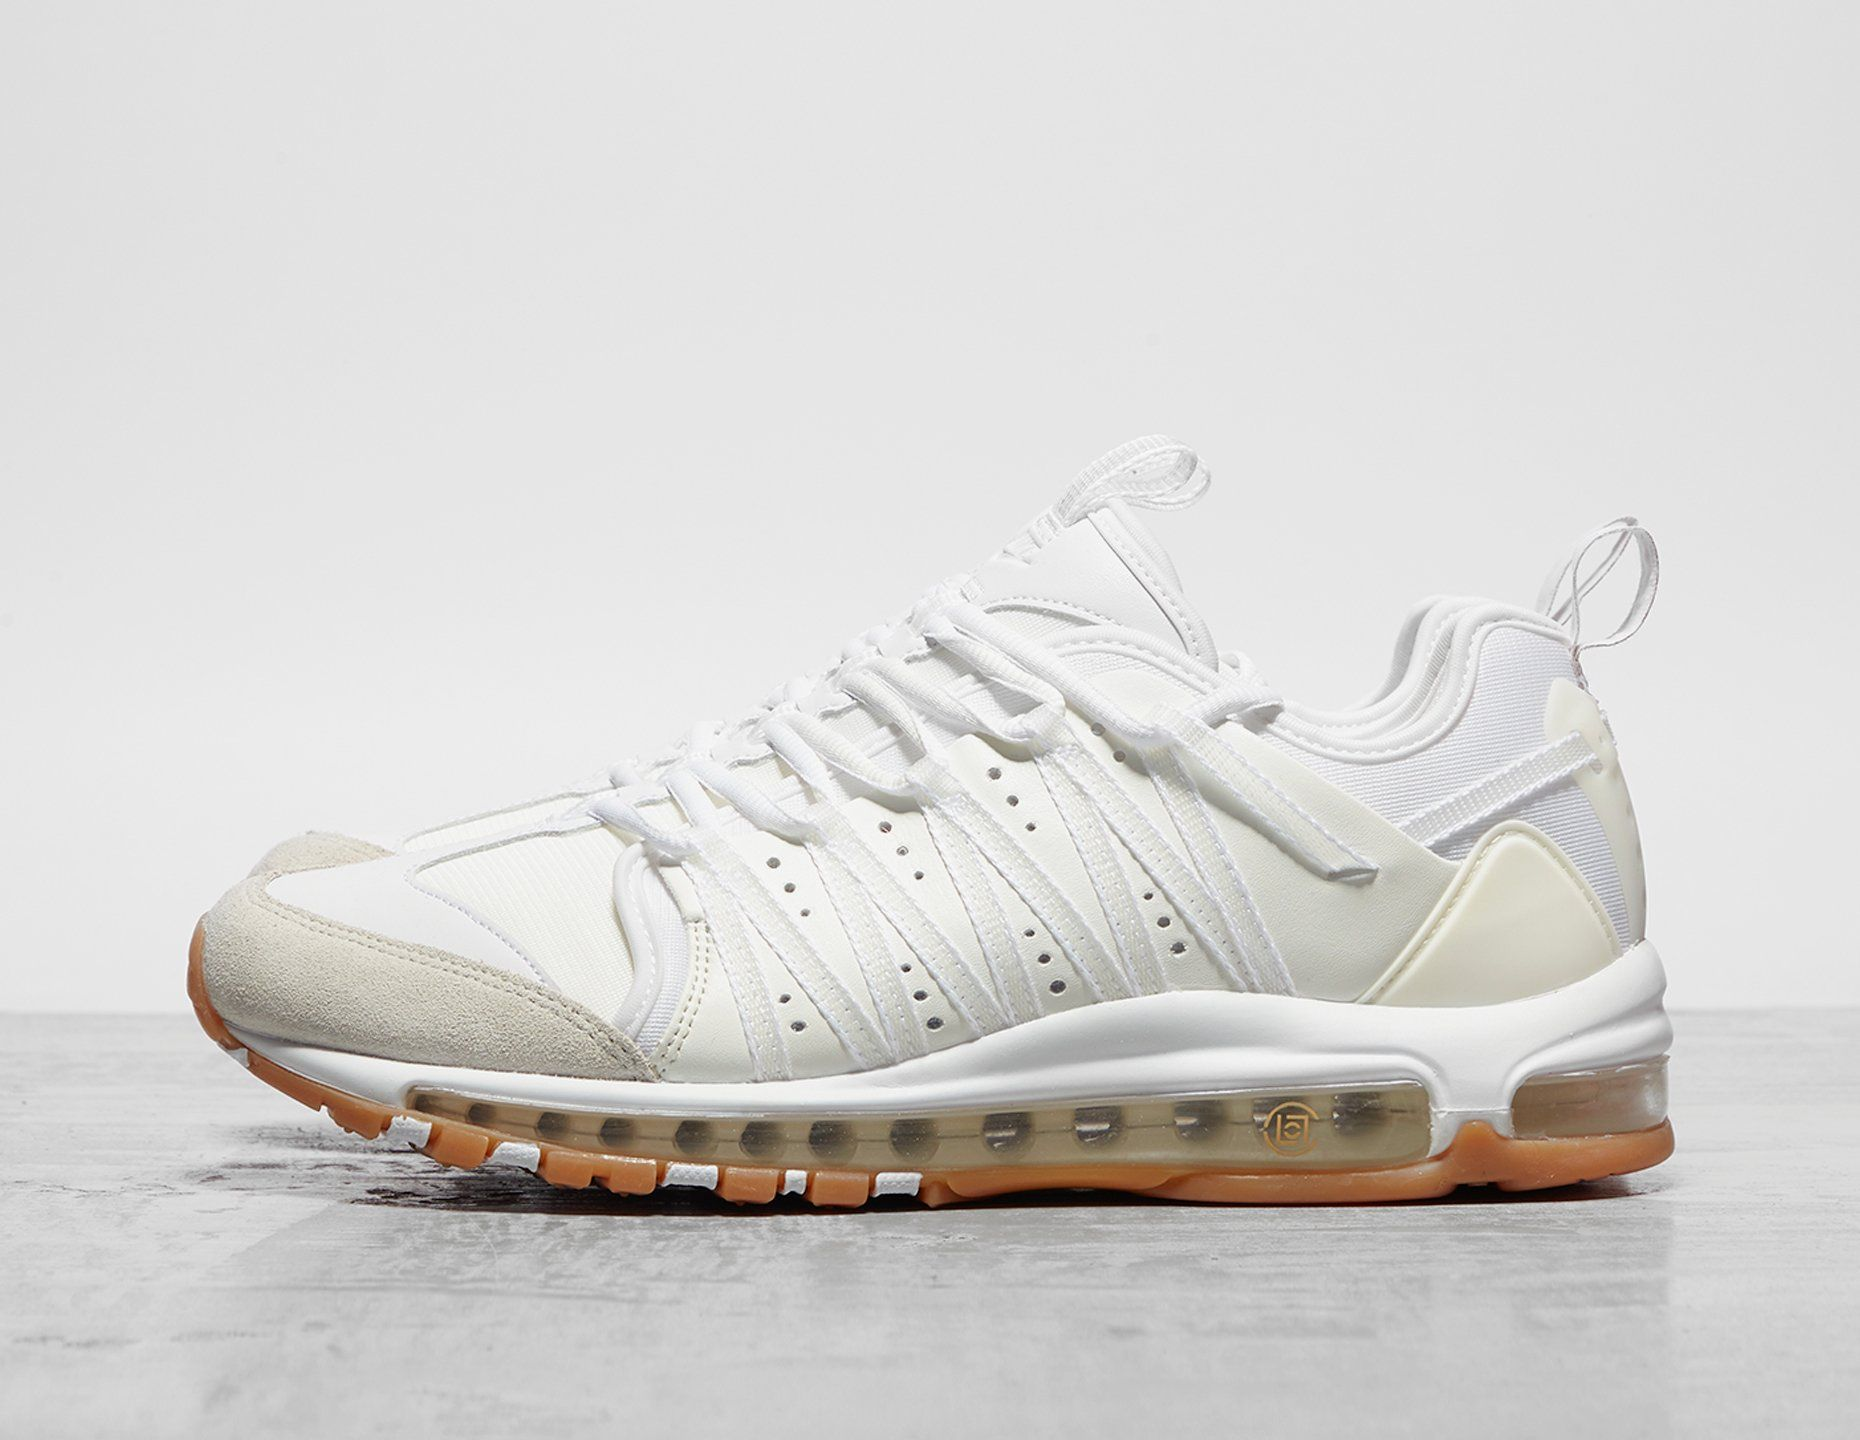 Nike x CLOT Air Max Haven